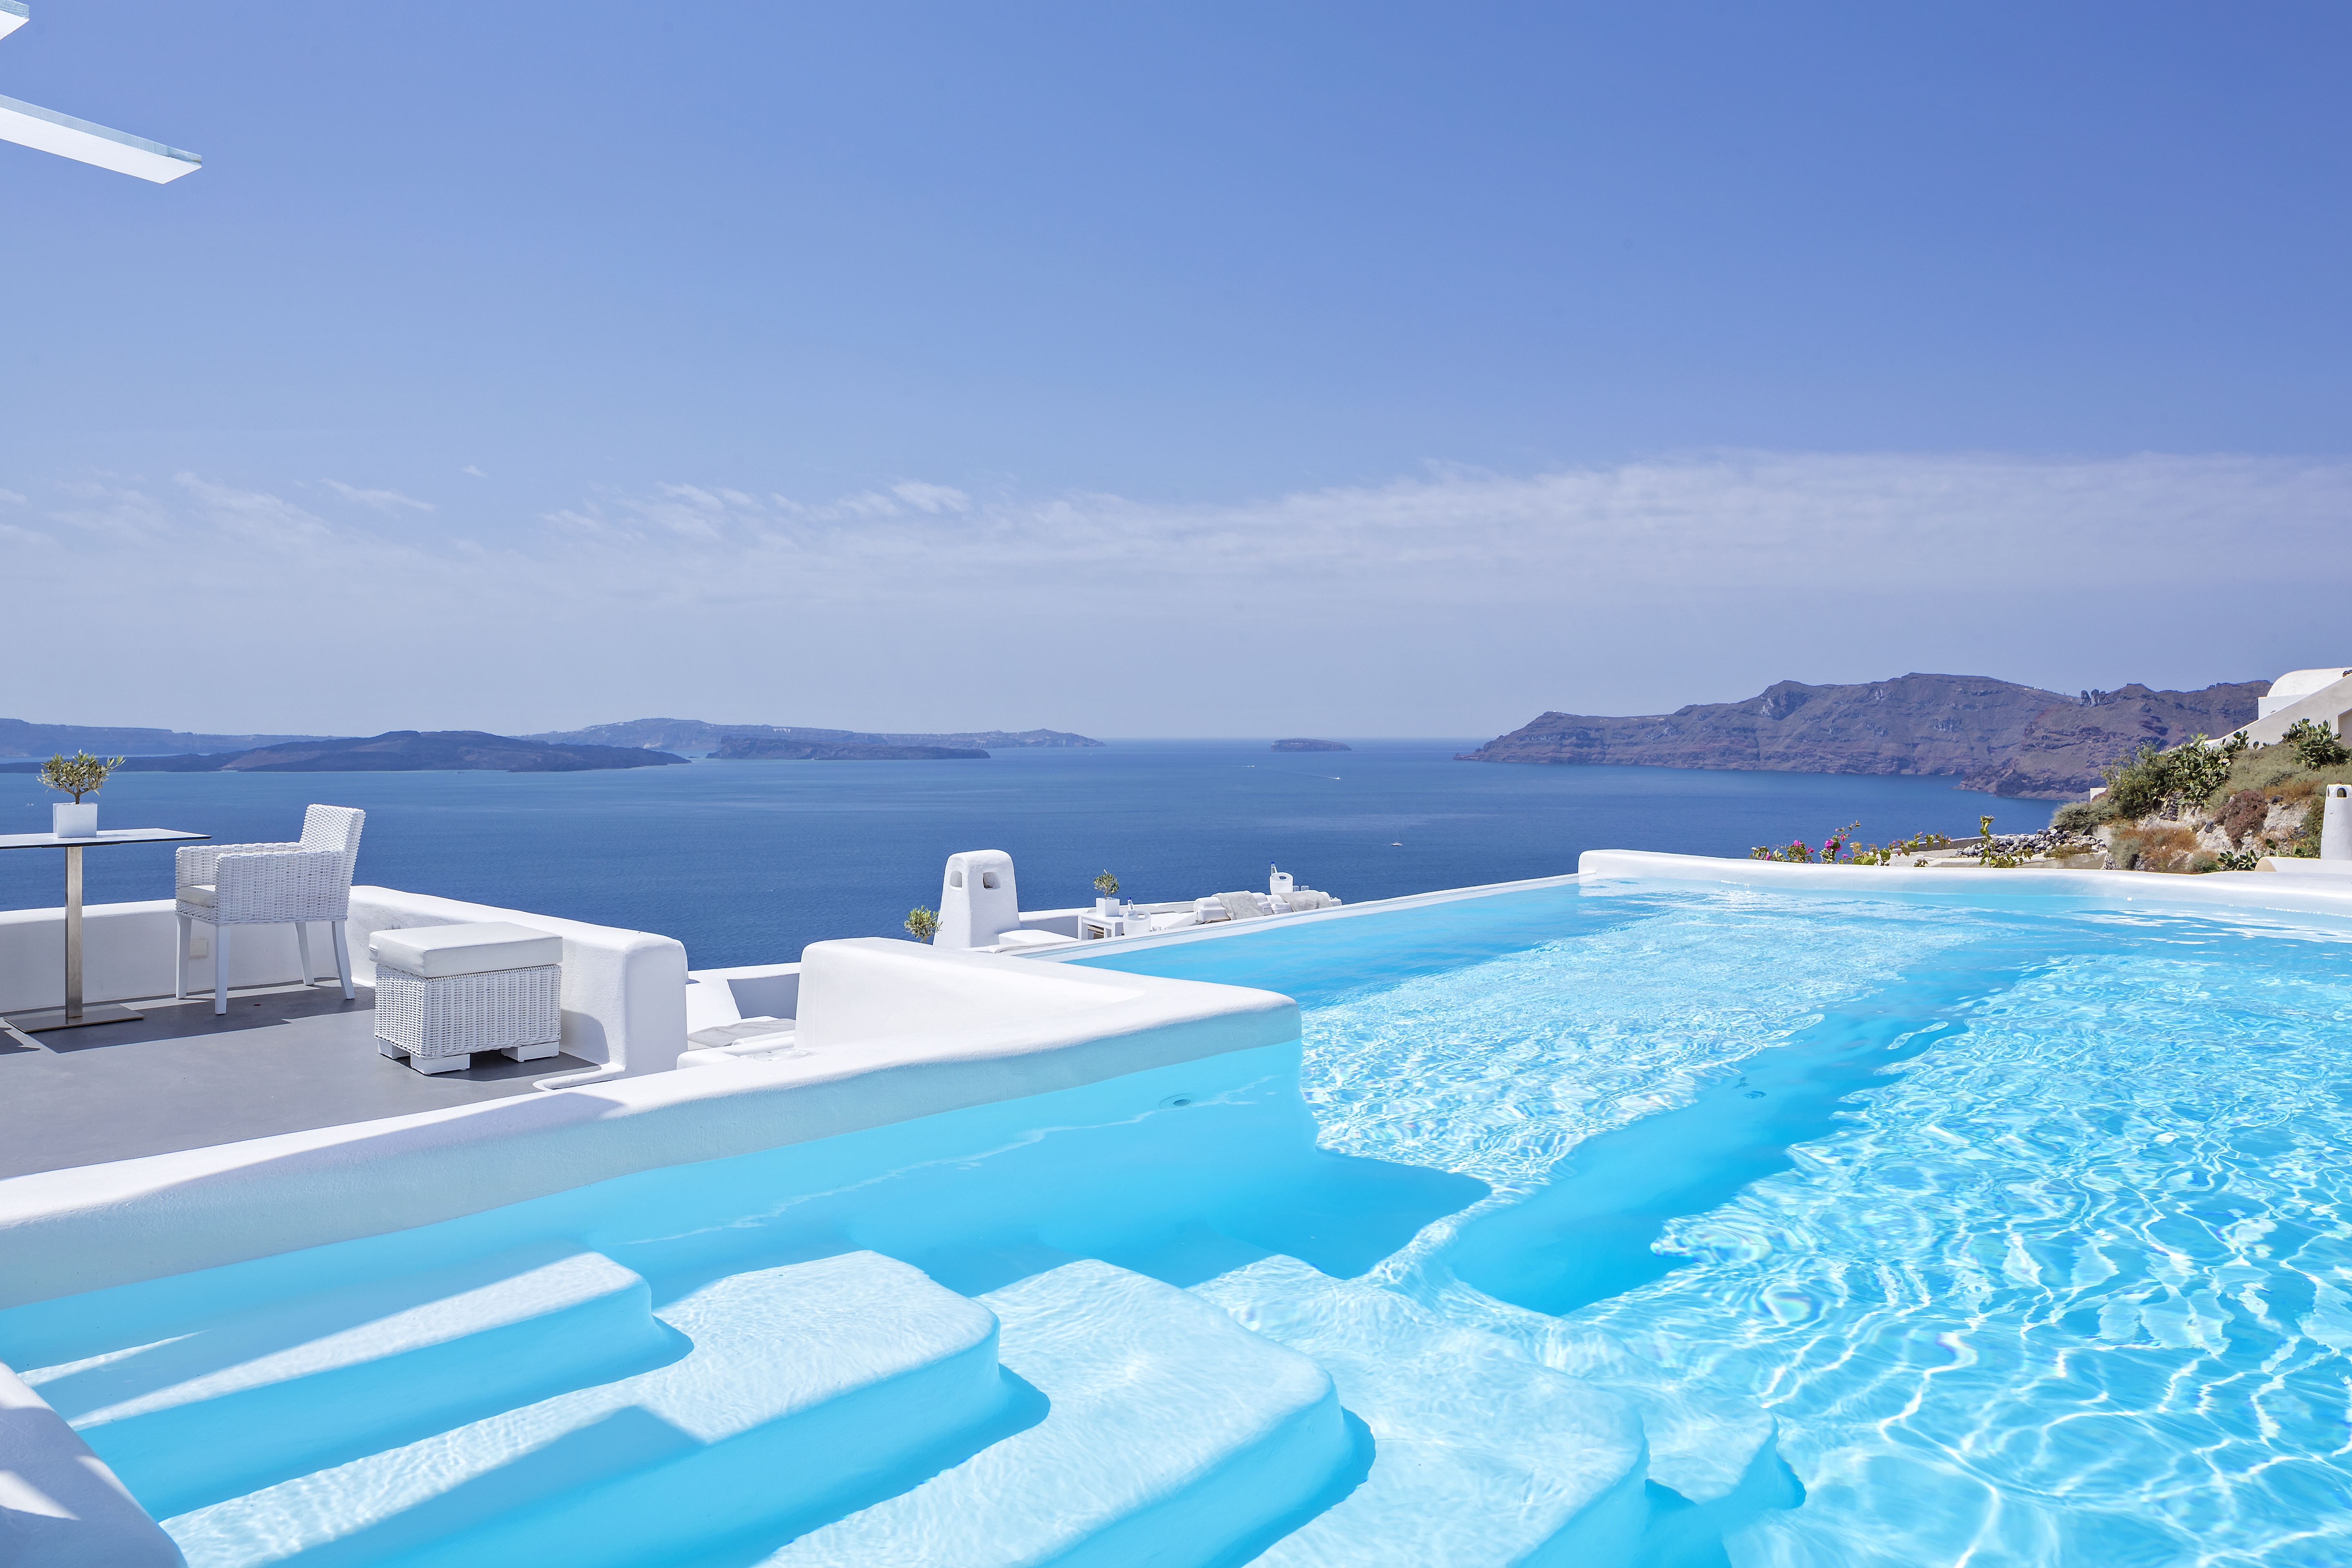 Canaves Oia Hotel in Greece